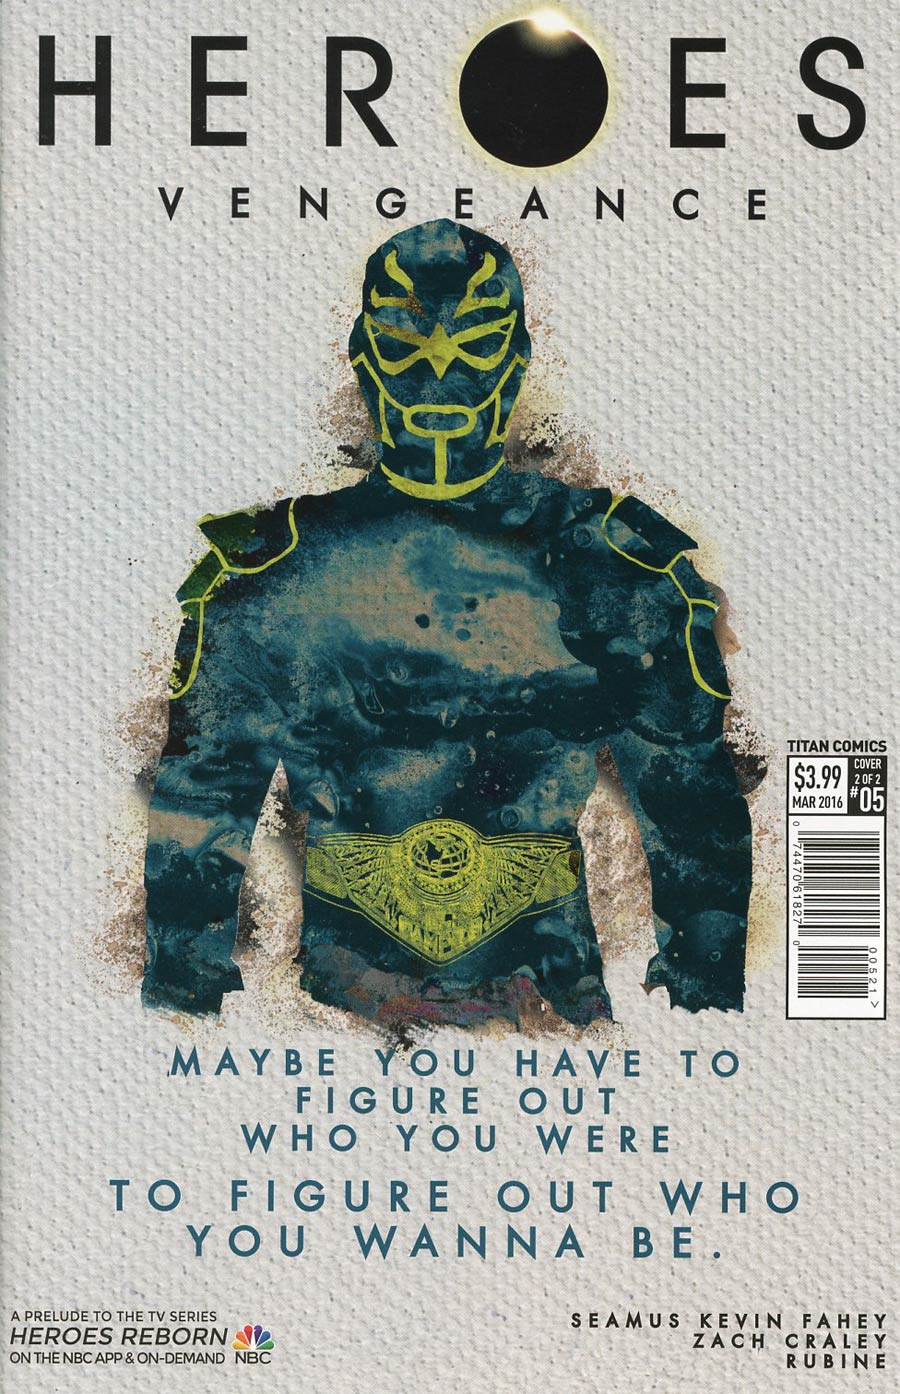 Heroes Vengeance #5 Cover B Variant Rubine Subscription Cover